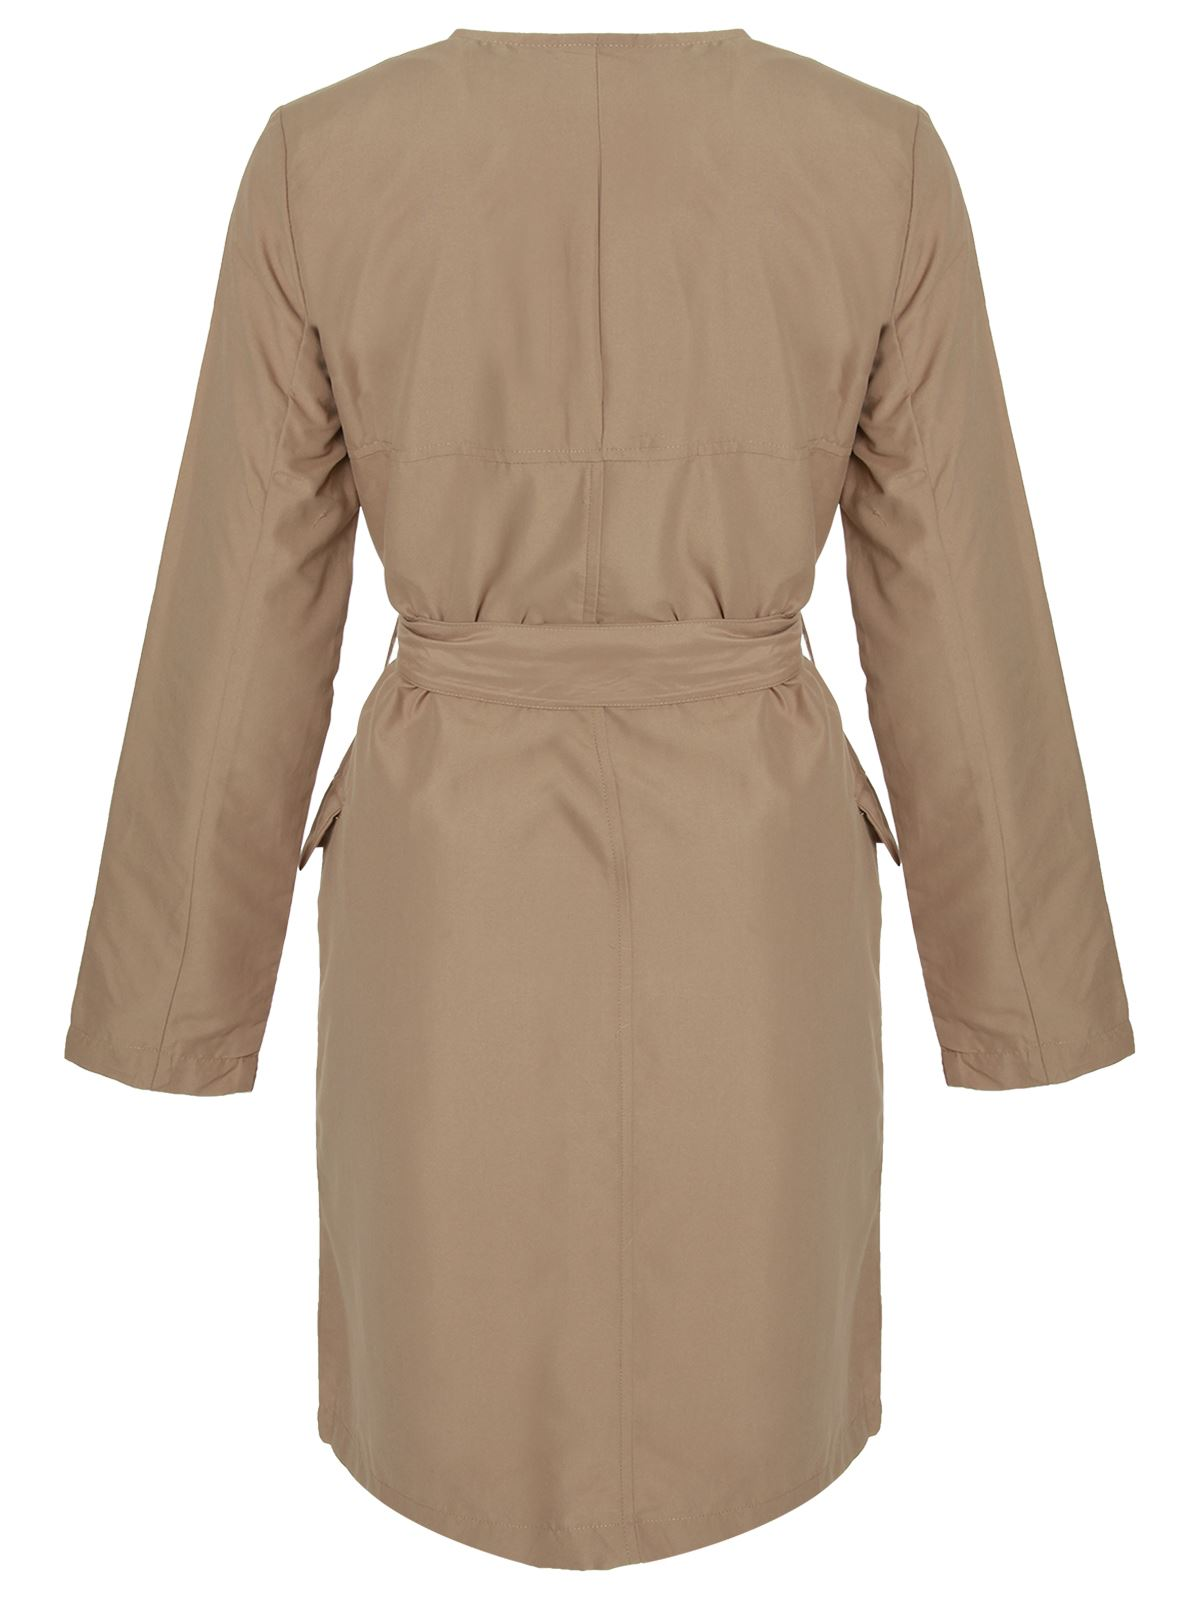 Ladies-Womens-Microfibre-Double-Breasted-Trench-Mac-Jacket-Tie-Belted-Coat